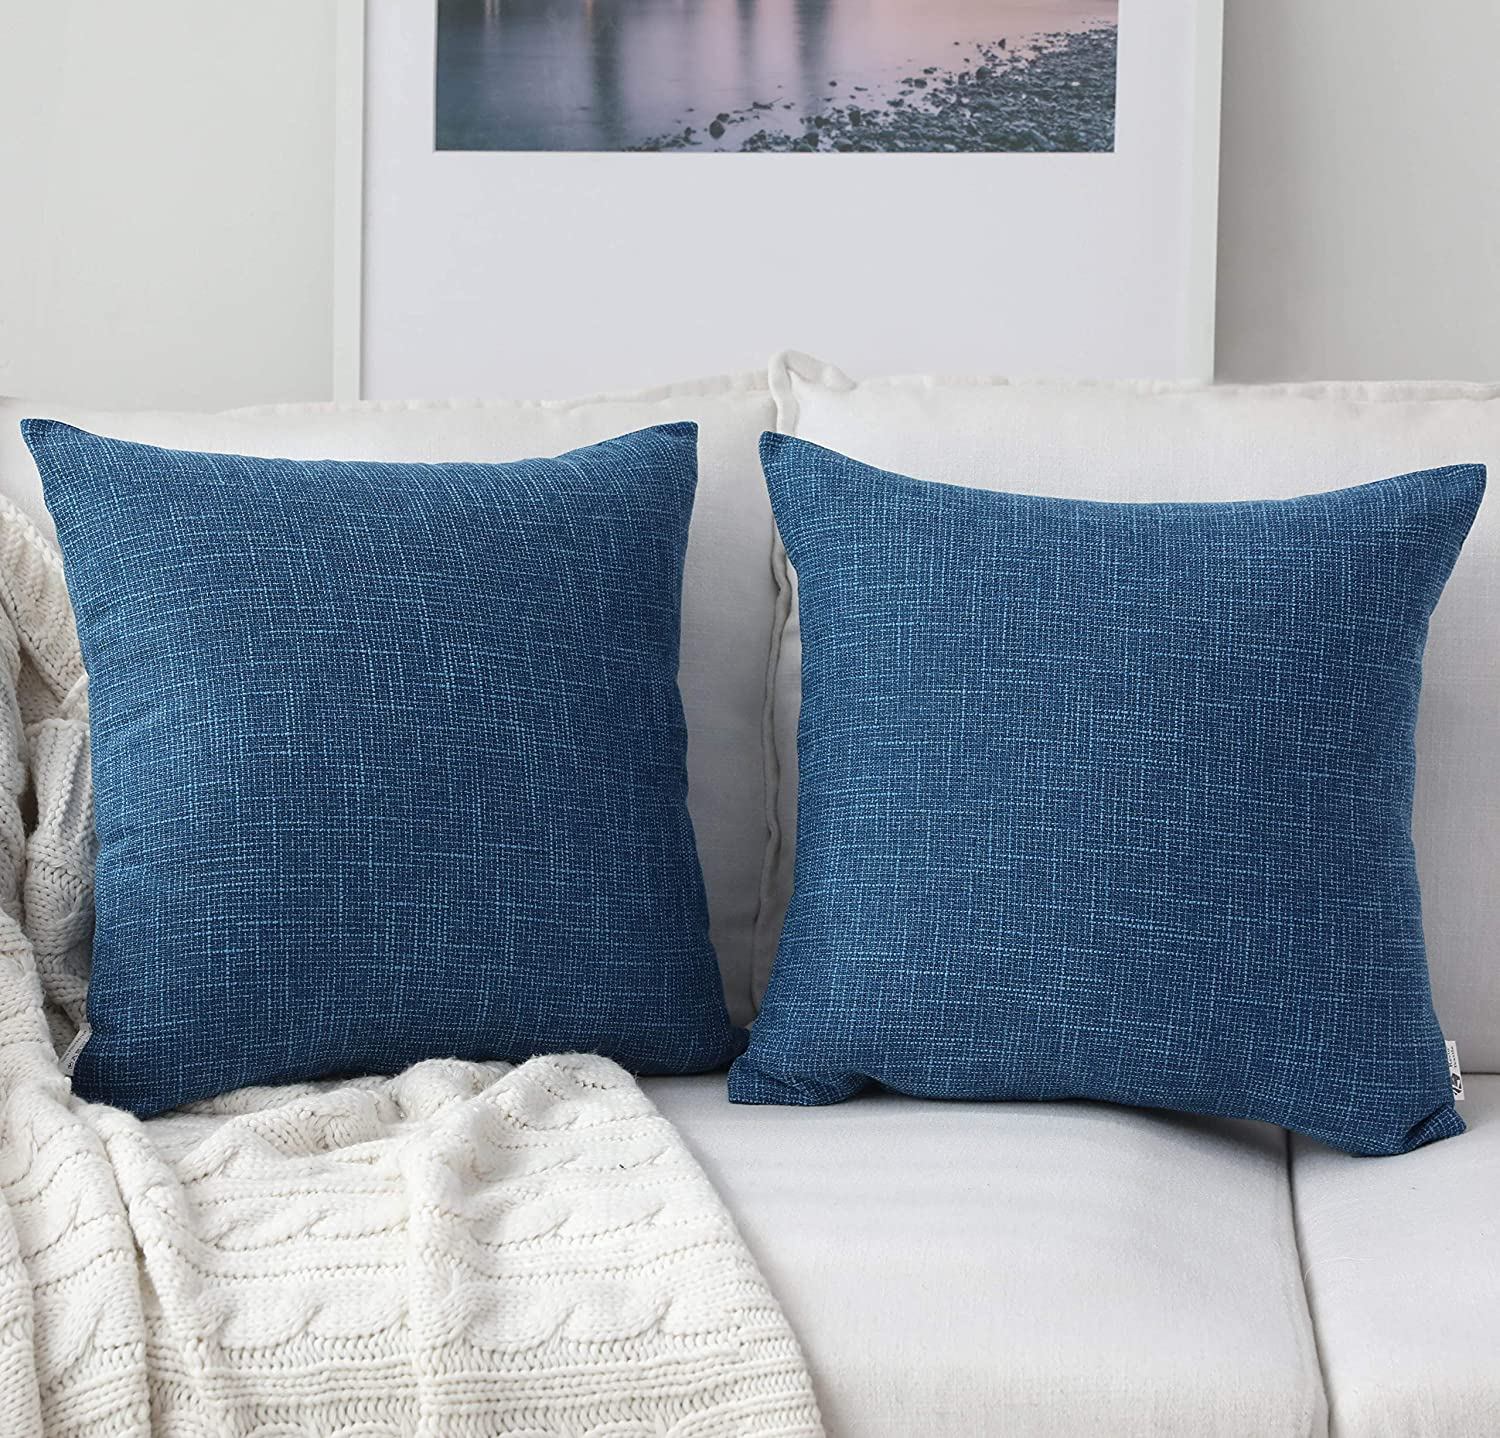 Kevin Textile Decorative Square Throw Pillow Covers Set Cushion Case for Sofa/Bedroom/Car, Set of 2, 20x20 inch, Navy Blue